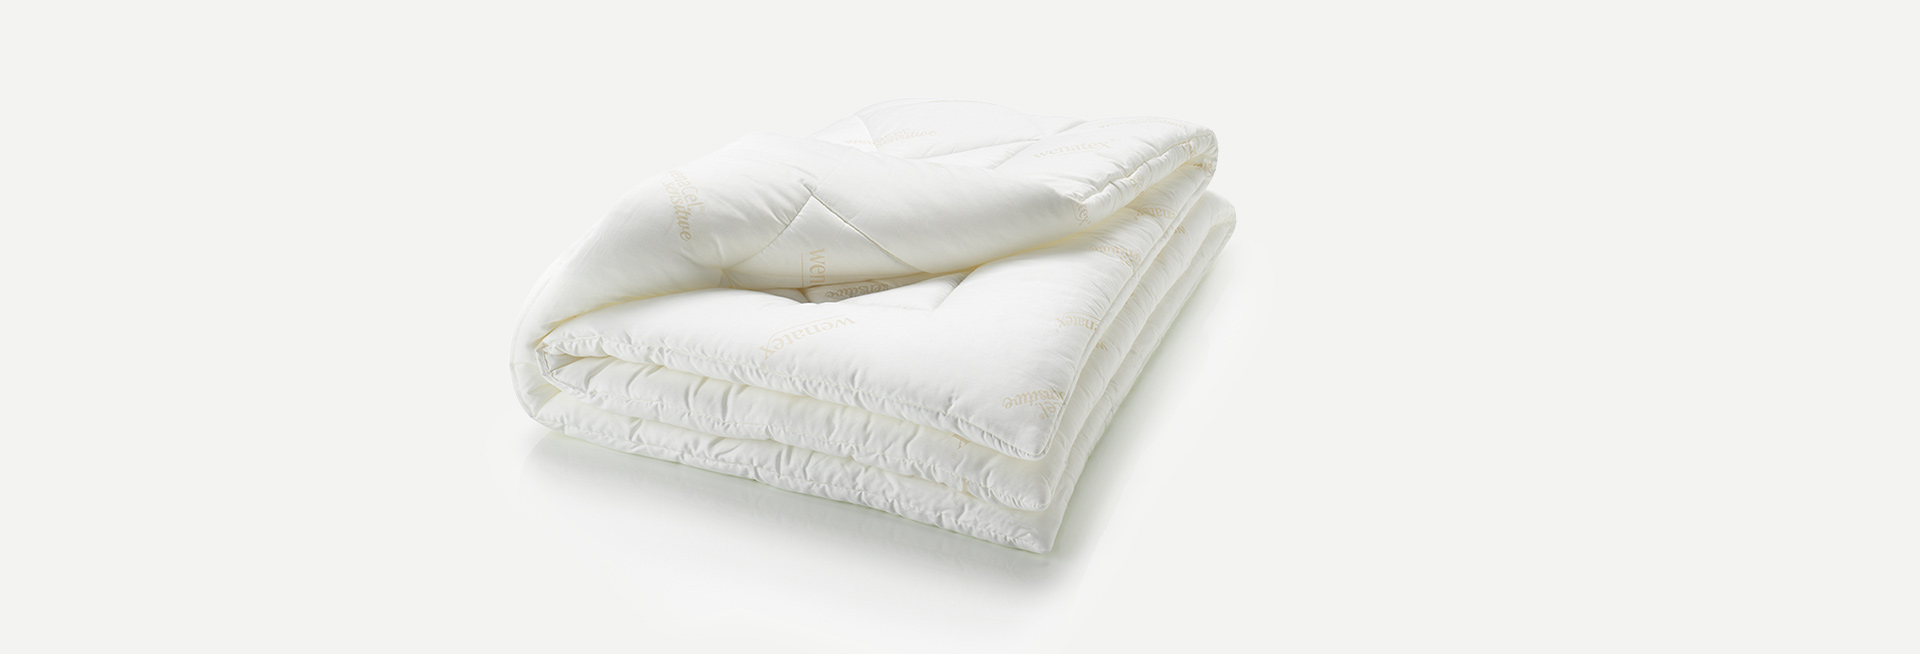 Wenatex Bettdecken - The Wenacel Sensitive All Season Duvet From Wenatex